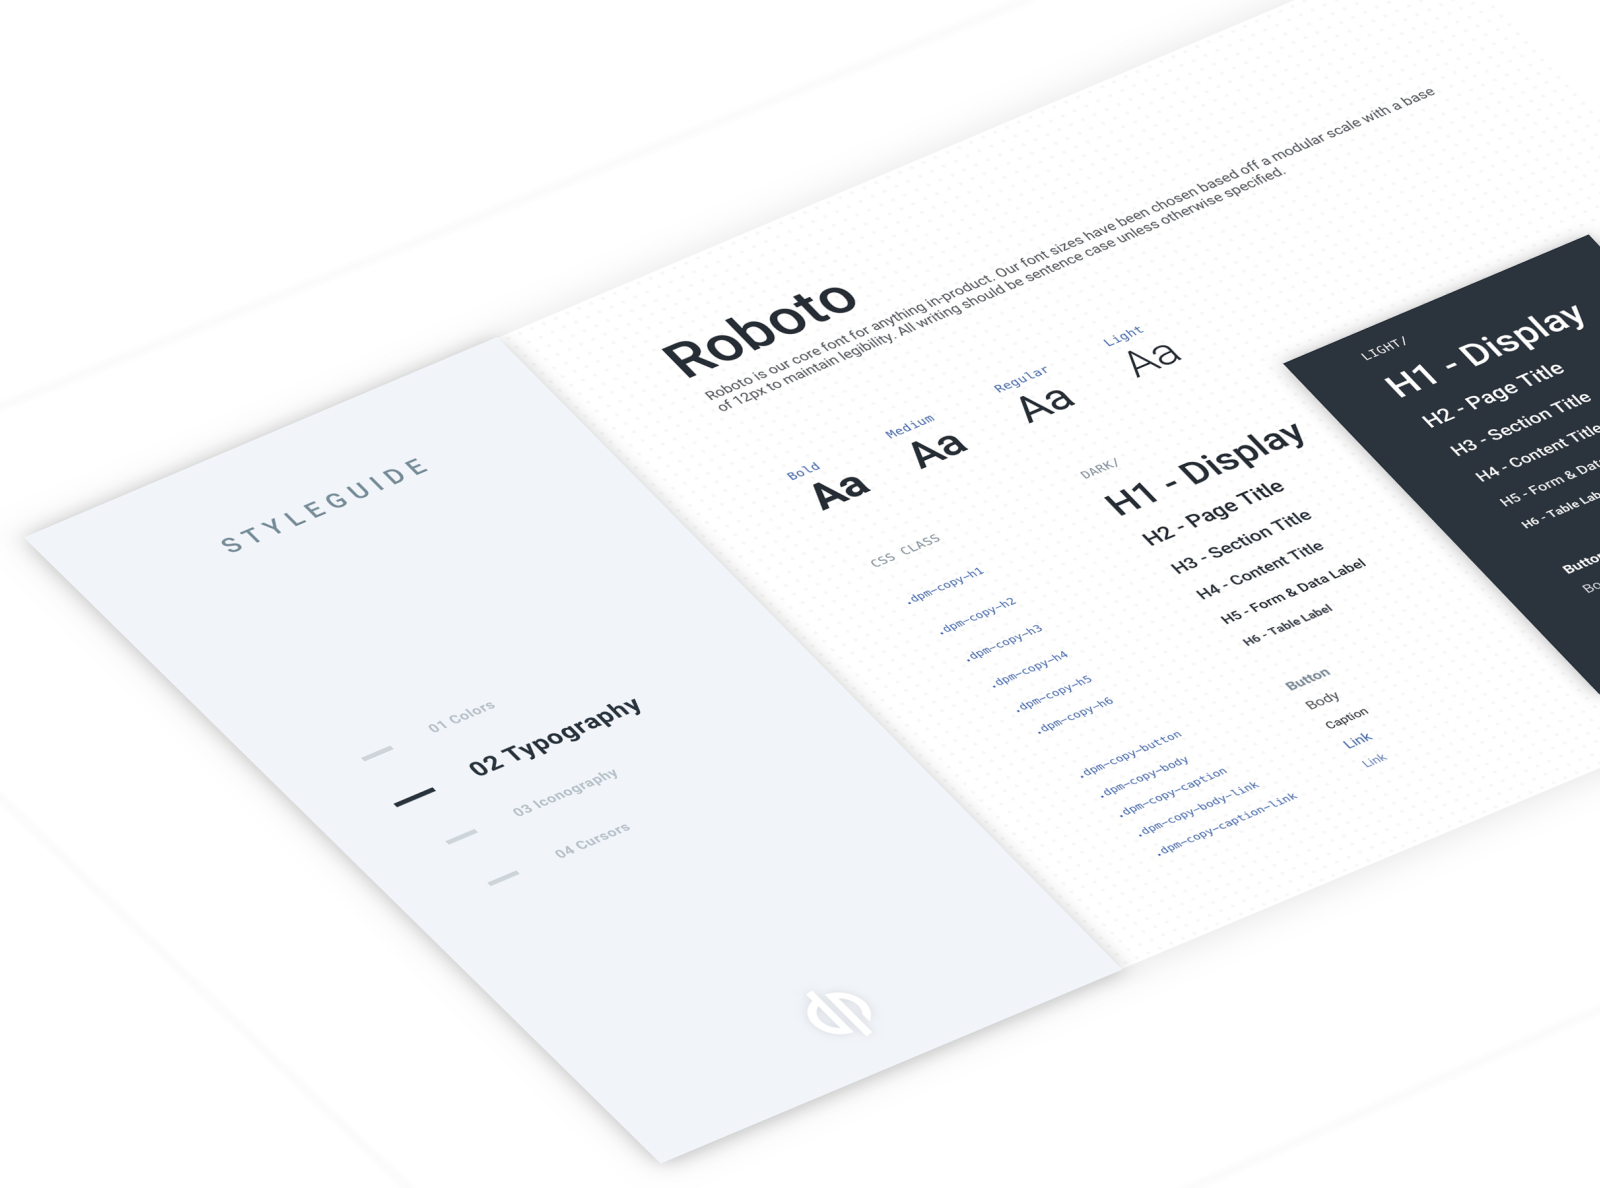 Style guide mockup by Hannah McIntyre on Dribbble